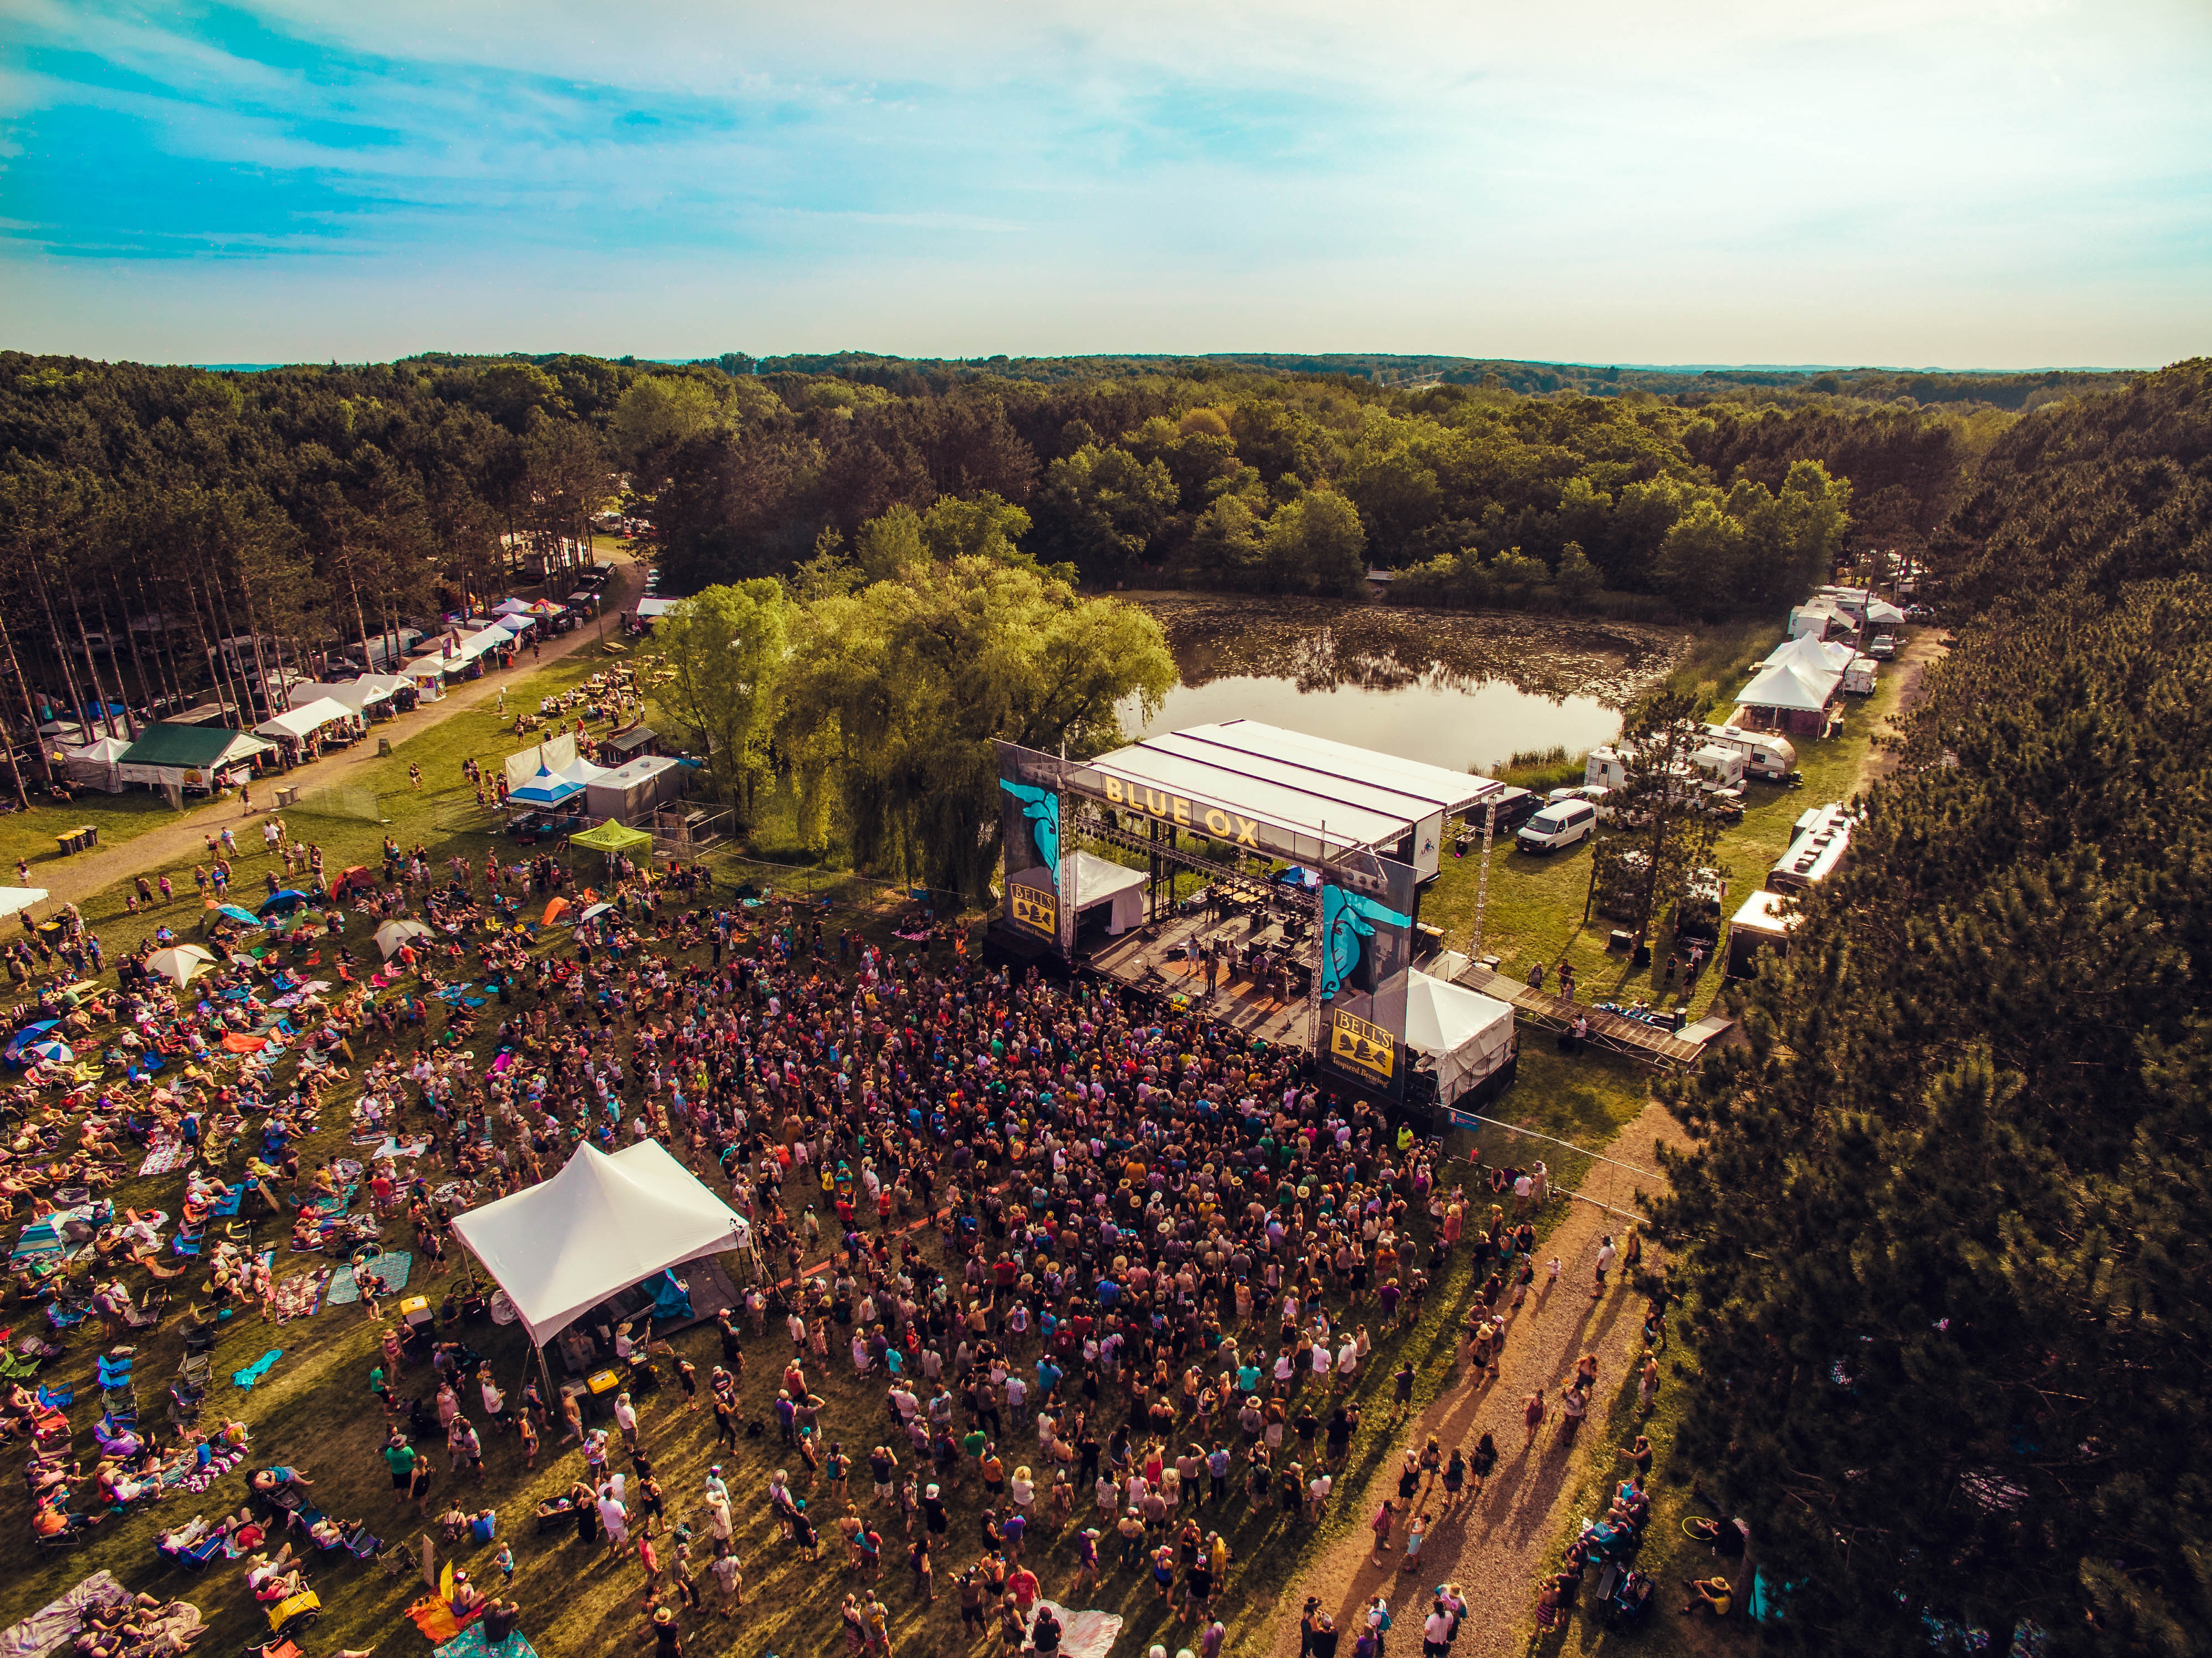 Blue Ox Music Festival: Six Reasons to Go